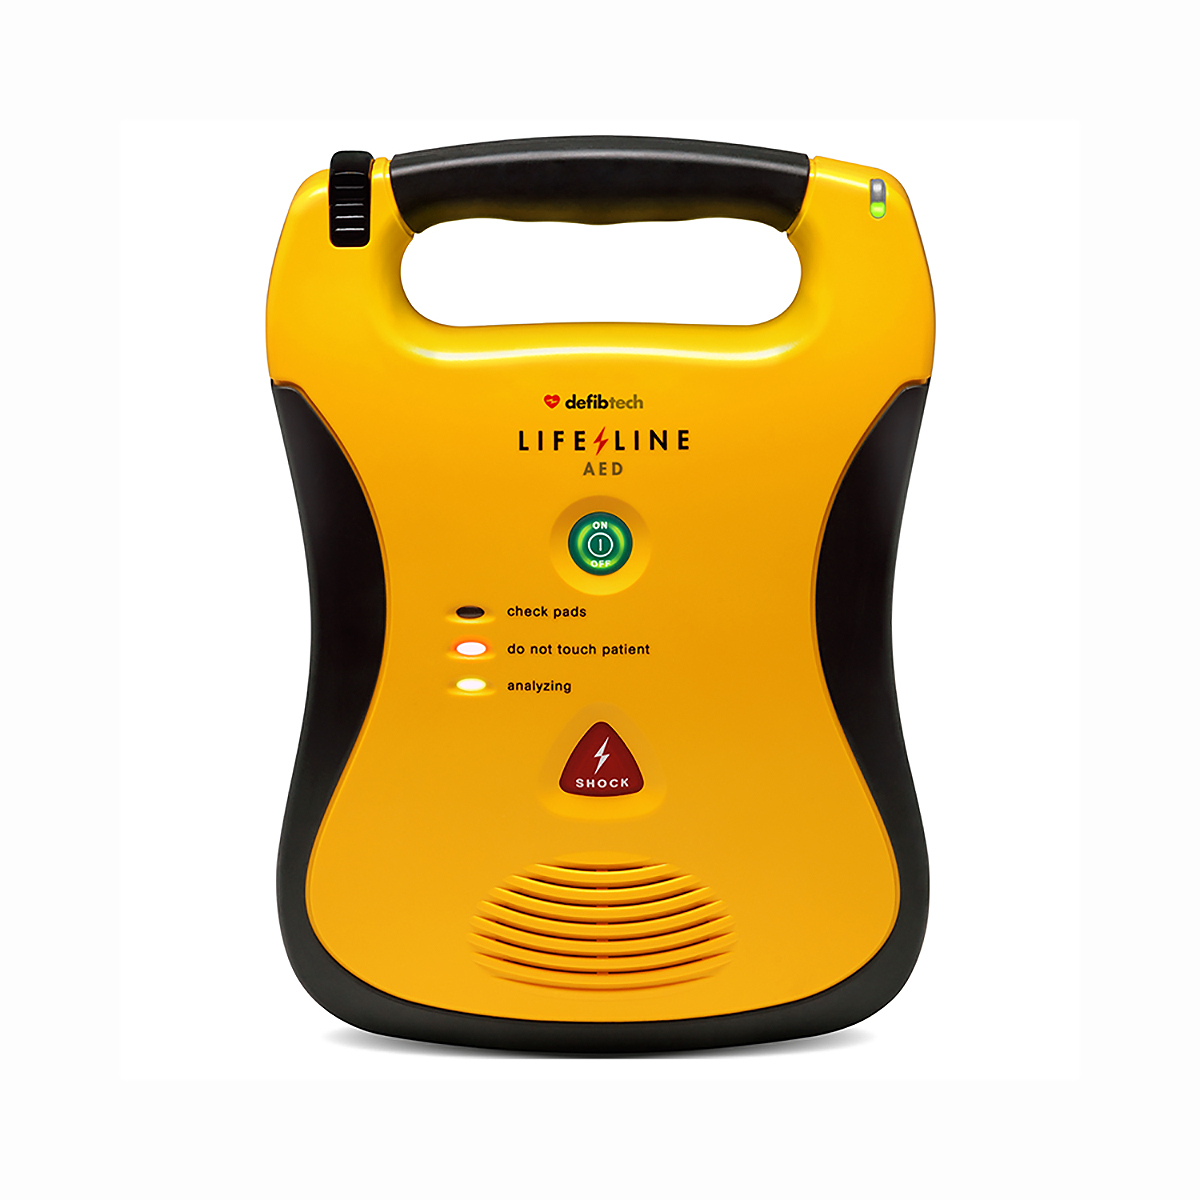 Lifeline AED Semi-Automatic Defibrillator with Standard Capacity Battery Pack